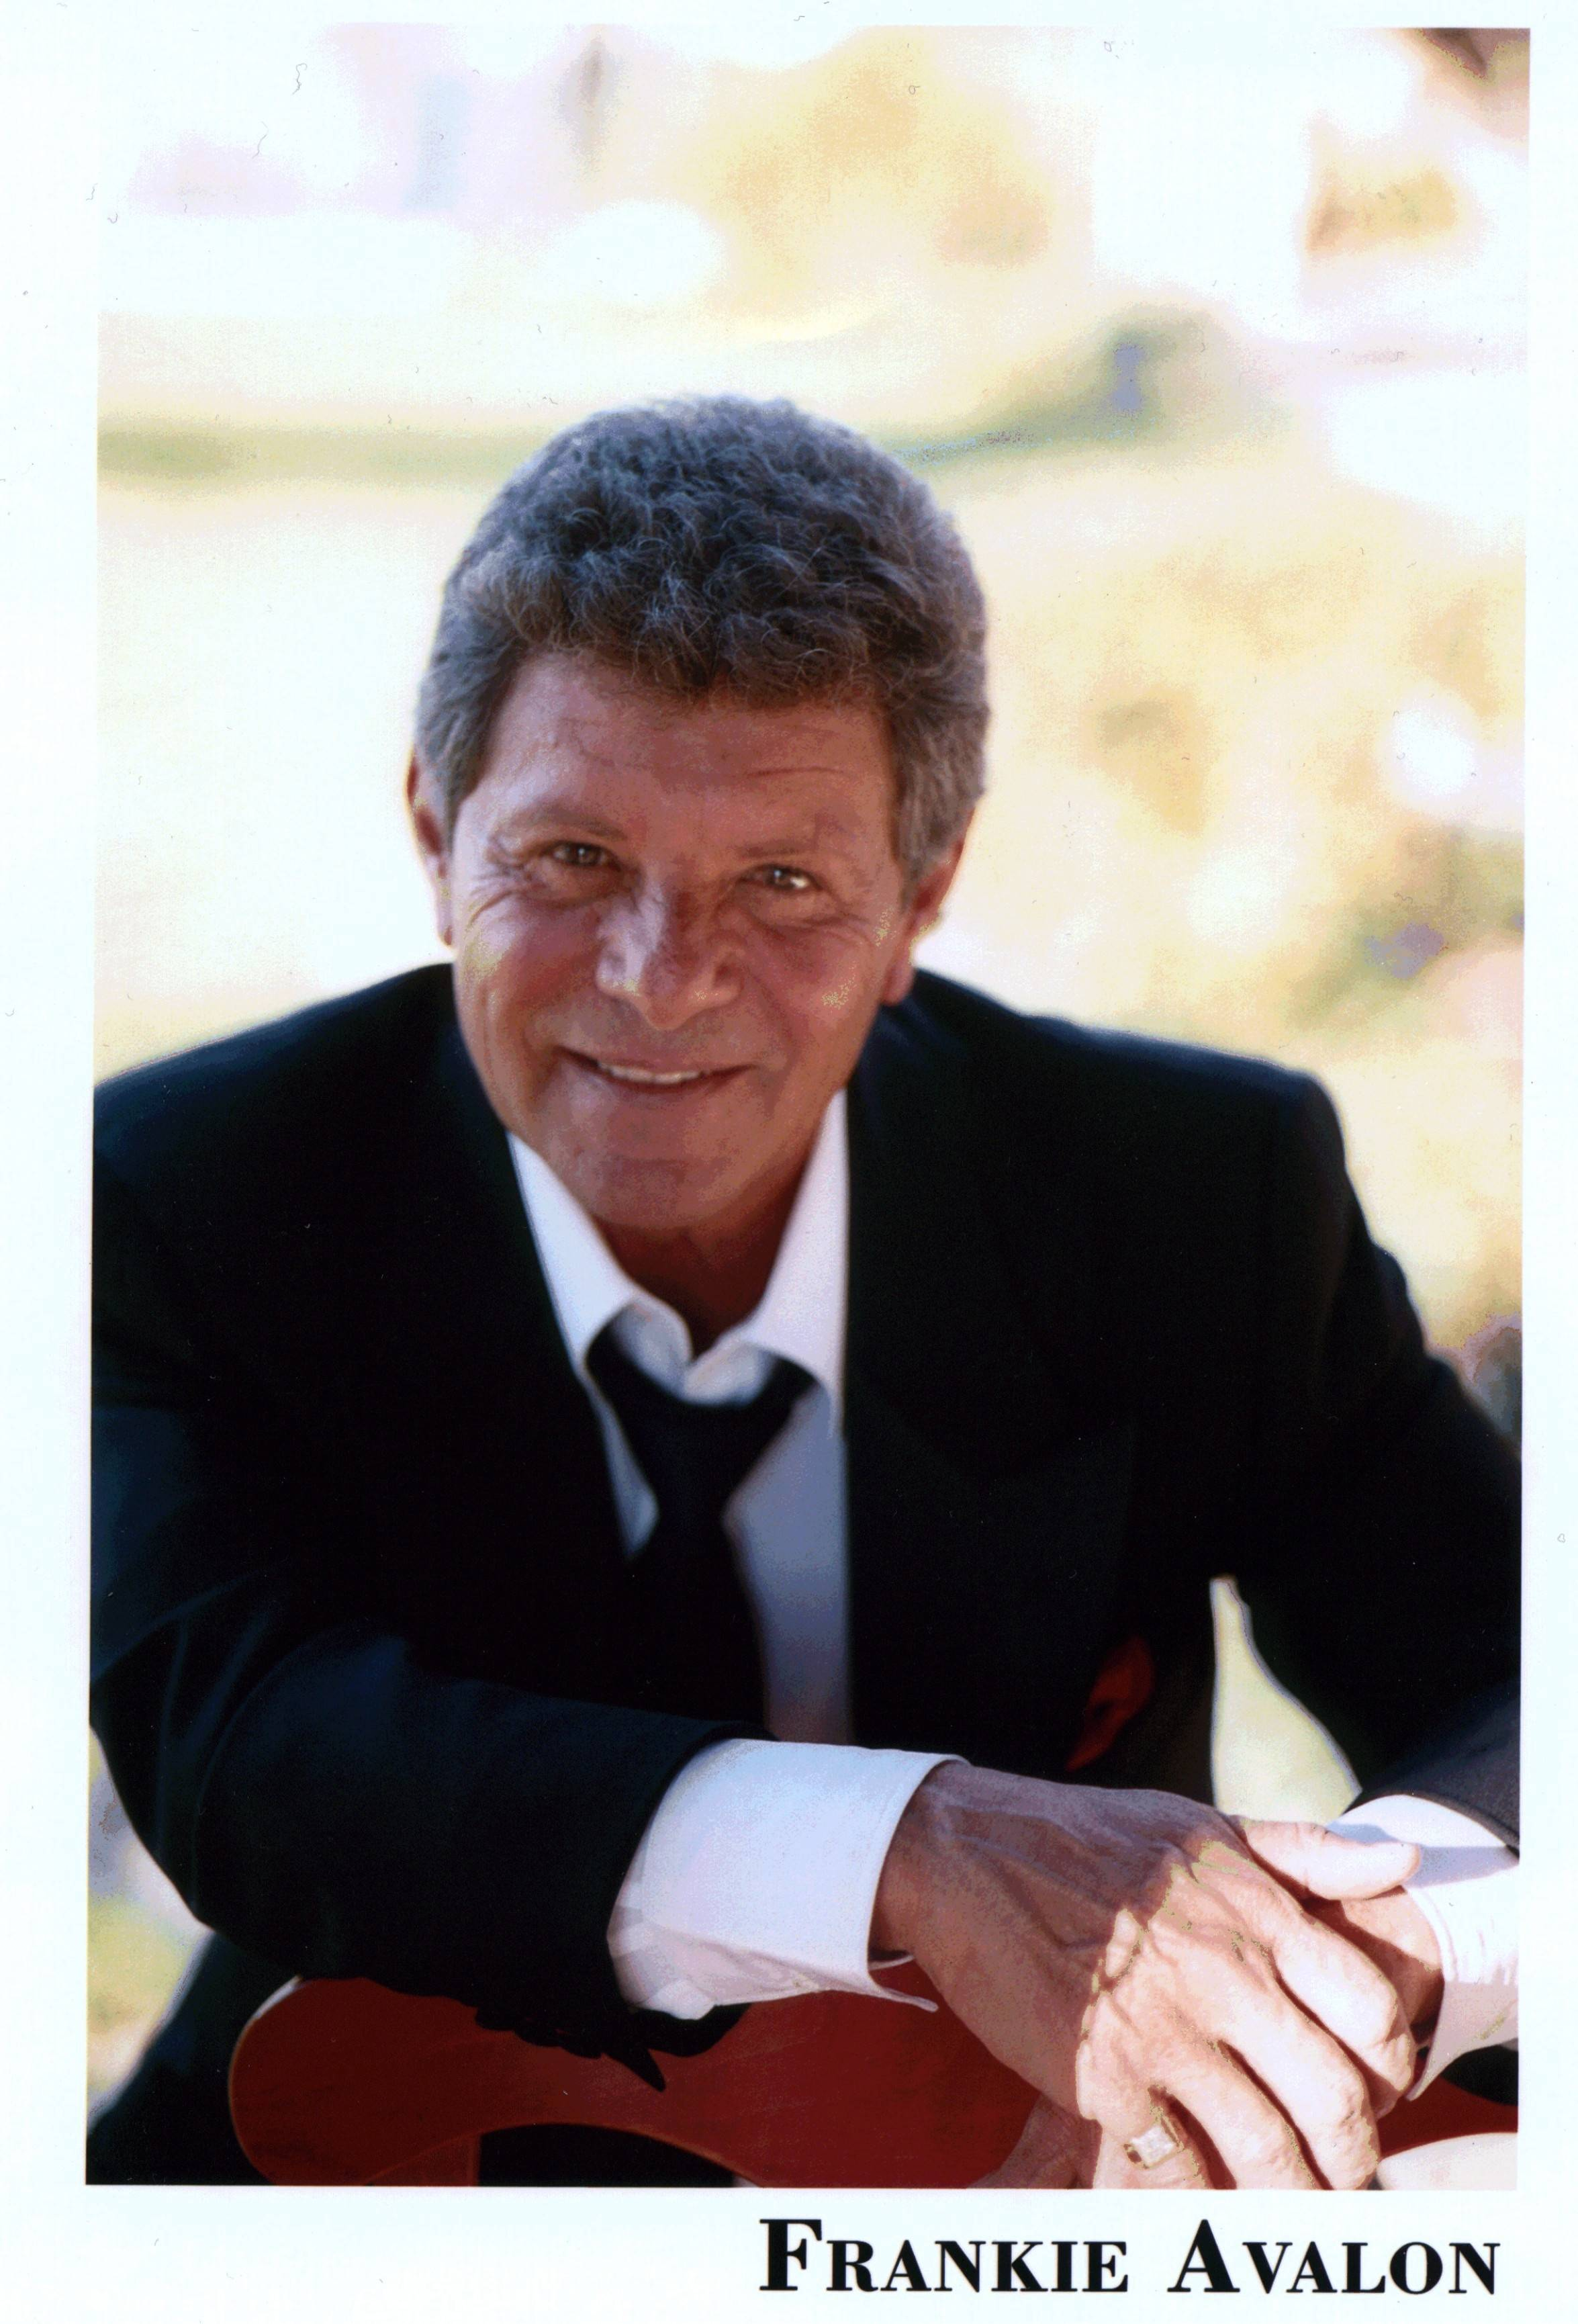 Singer Frankie Avalon will headline on Monday, May 19, and Tuesday, May 20, at the Drury Lane Theatre in Oakbrook Terrace.